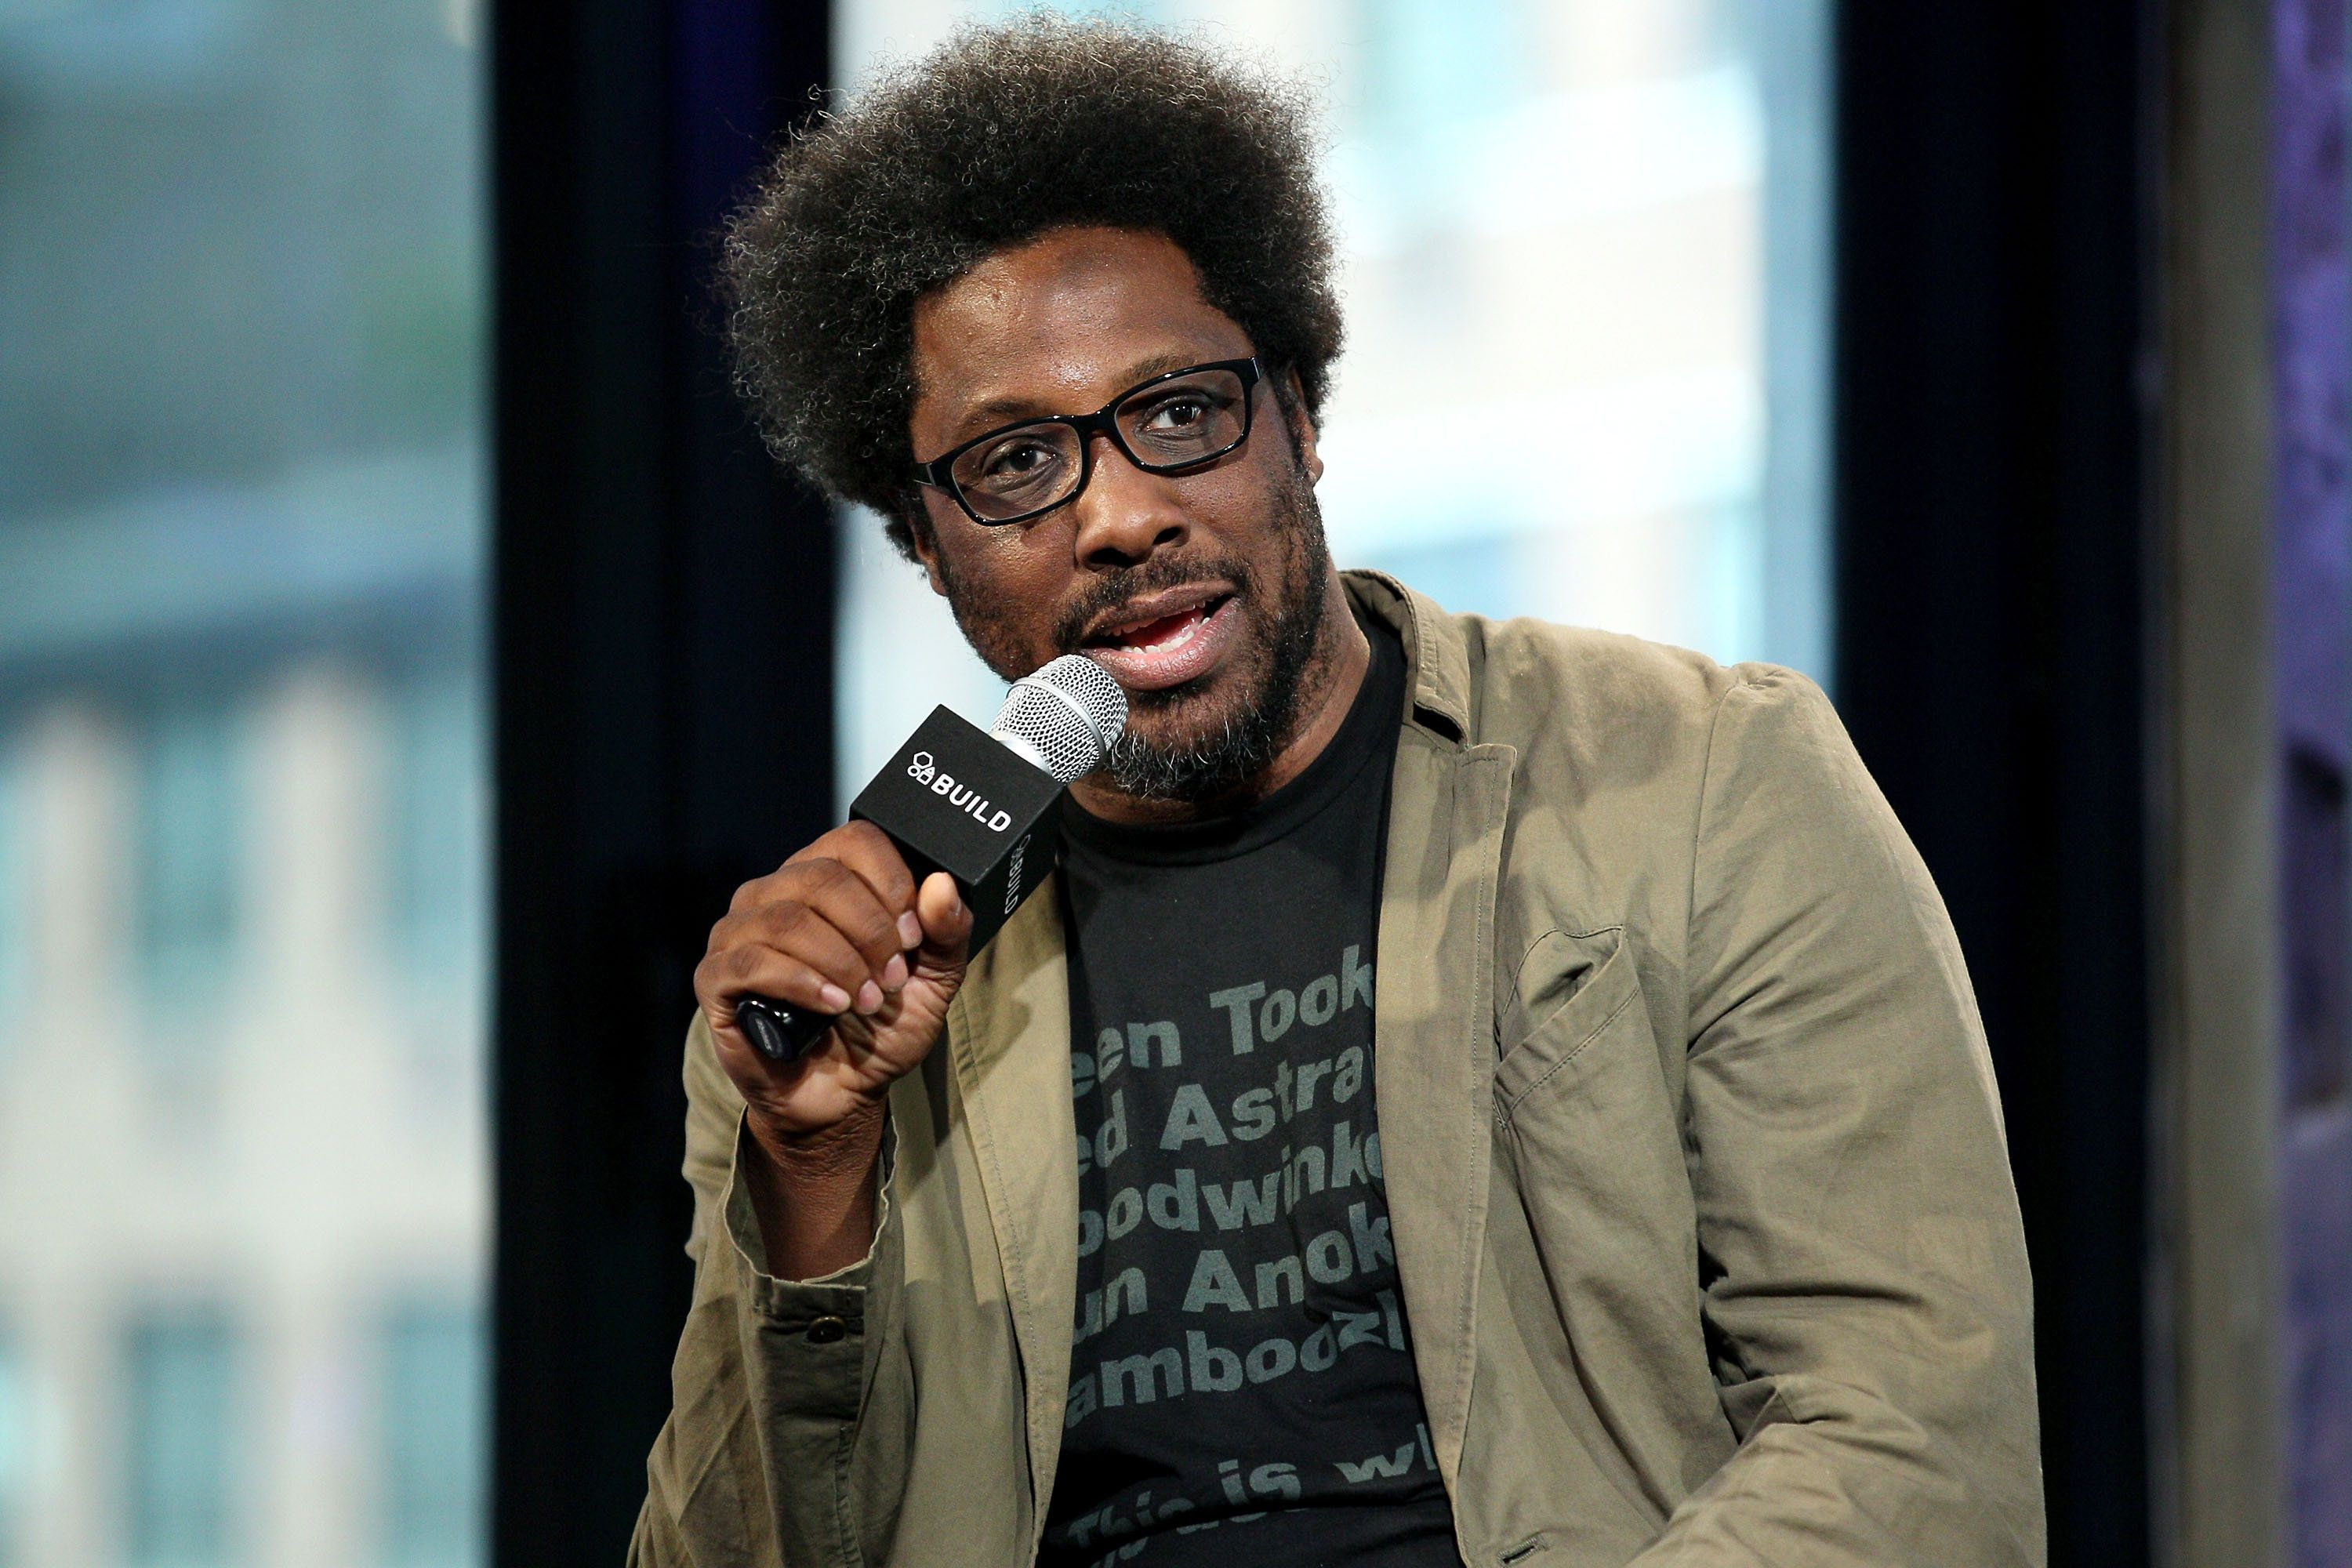 NEW YORK, NY - APRIL 21:  W Kamau Bell attends AOL Build Presents to discuss his Showtime special 'Semi-Prominent Negro' and his CNN docu-series 'United Shades of America' at AOL Studios In New York on April 21, 2016 in New York City.  (Photo by Steve Mack/FilmMagic)